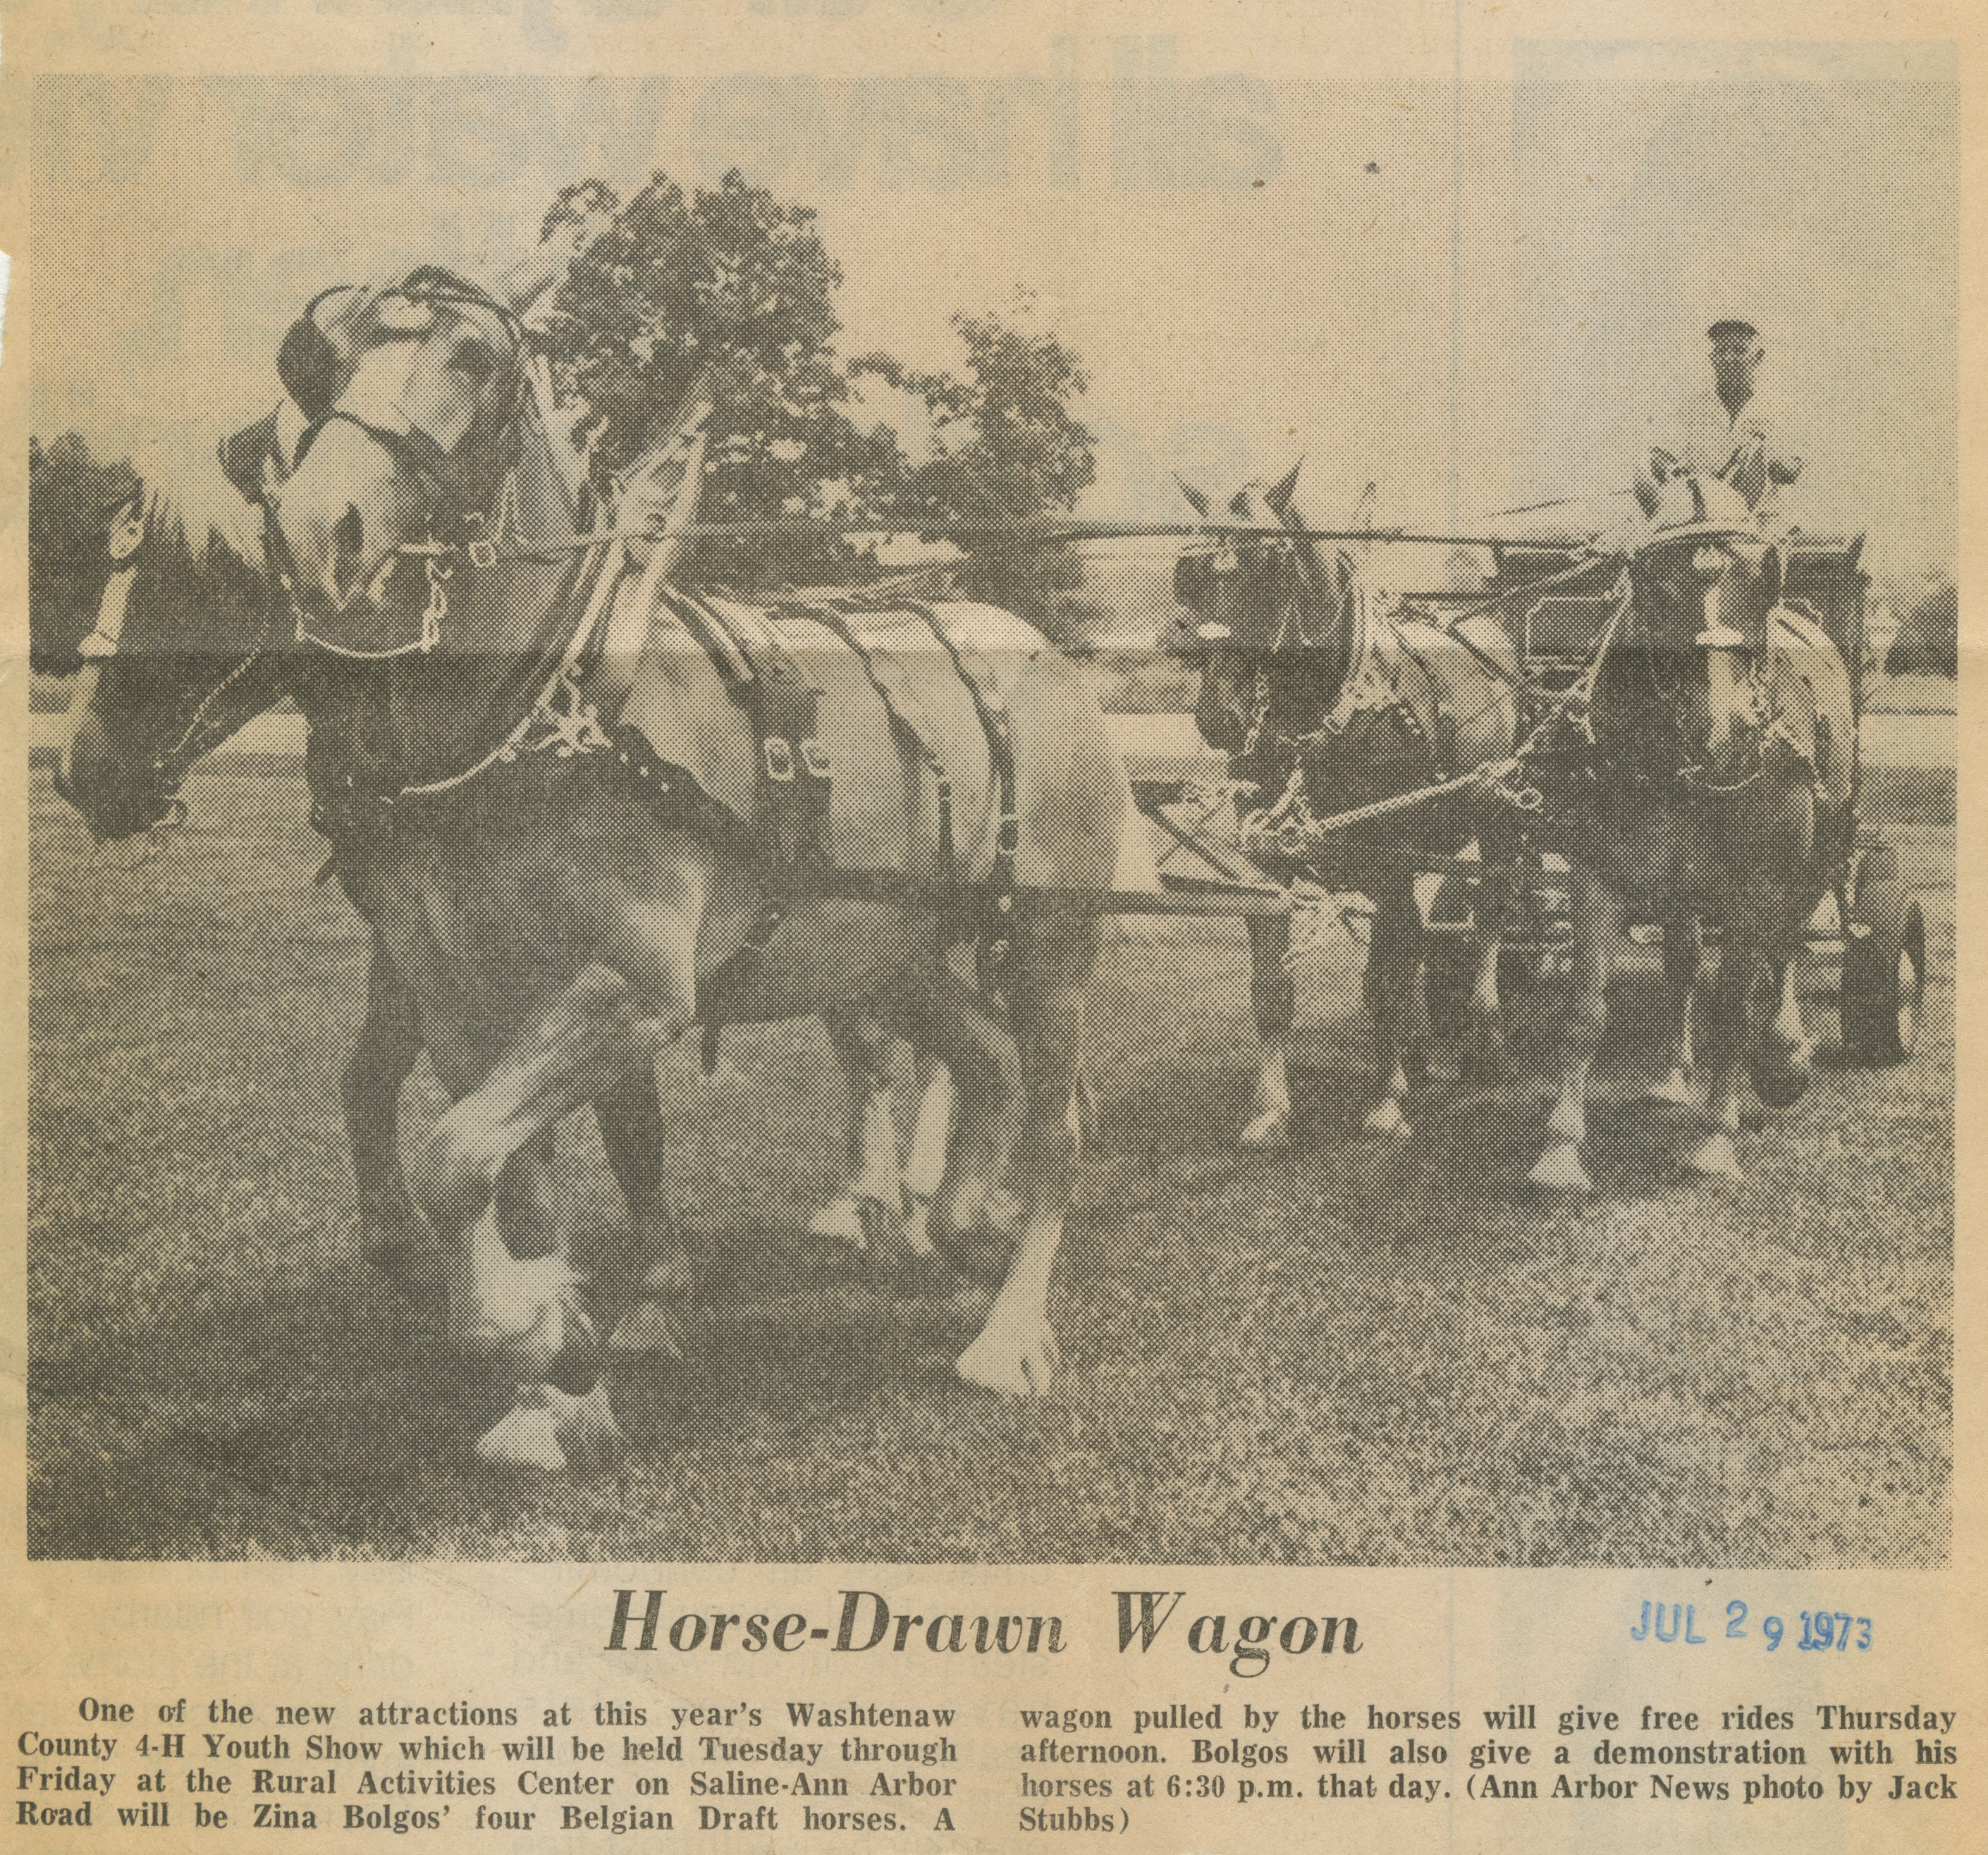 Horse-Drawn Wagon image